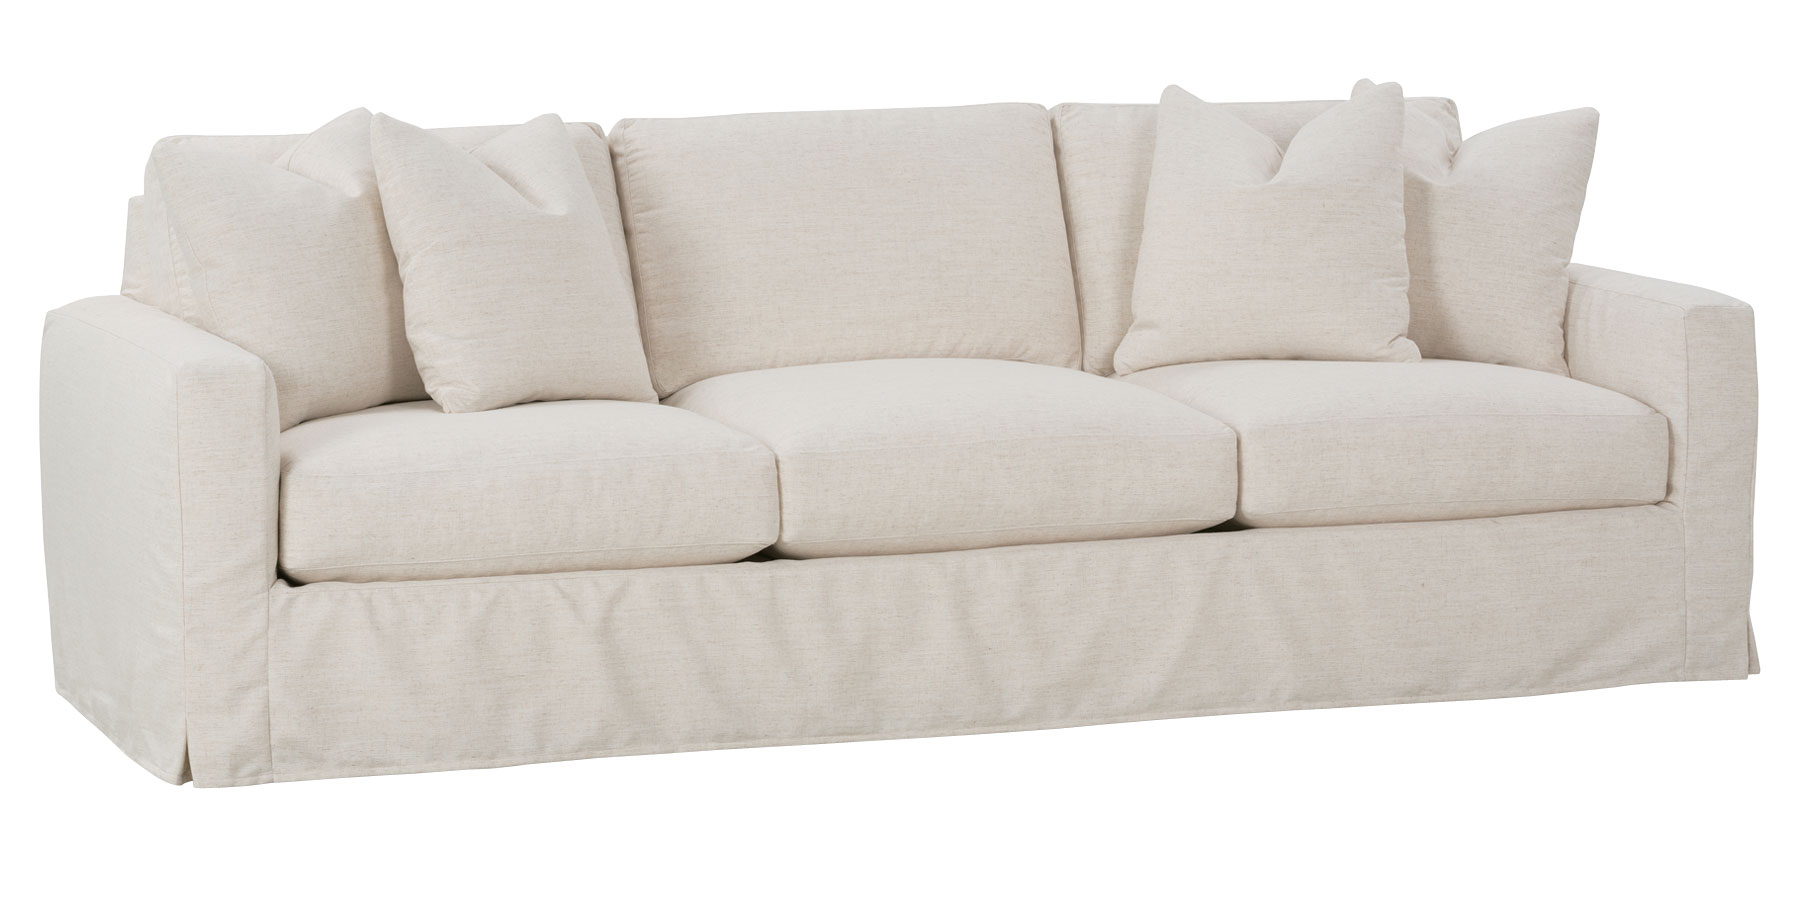 Lindsey 3 Lengths Select A Size Grand Scale Sofa